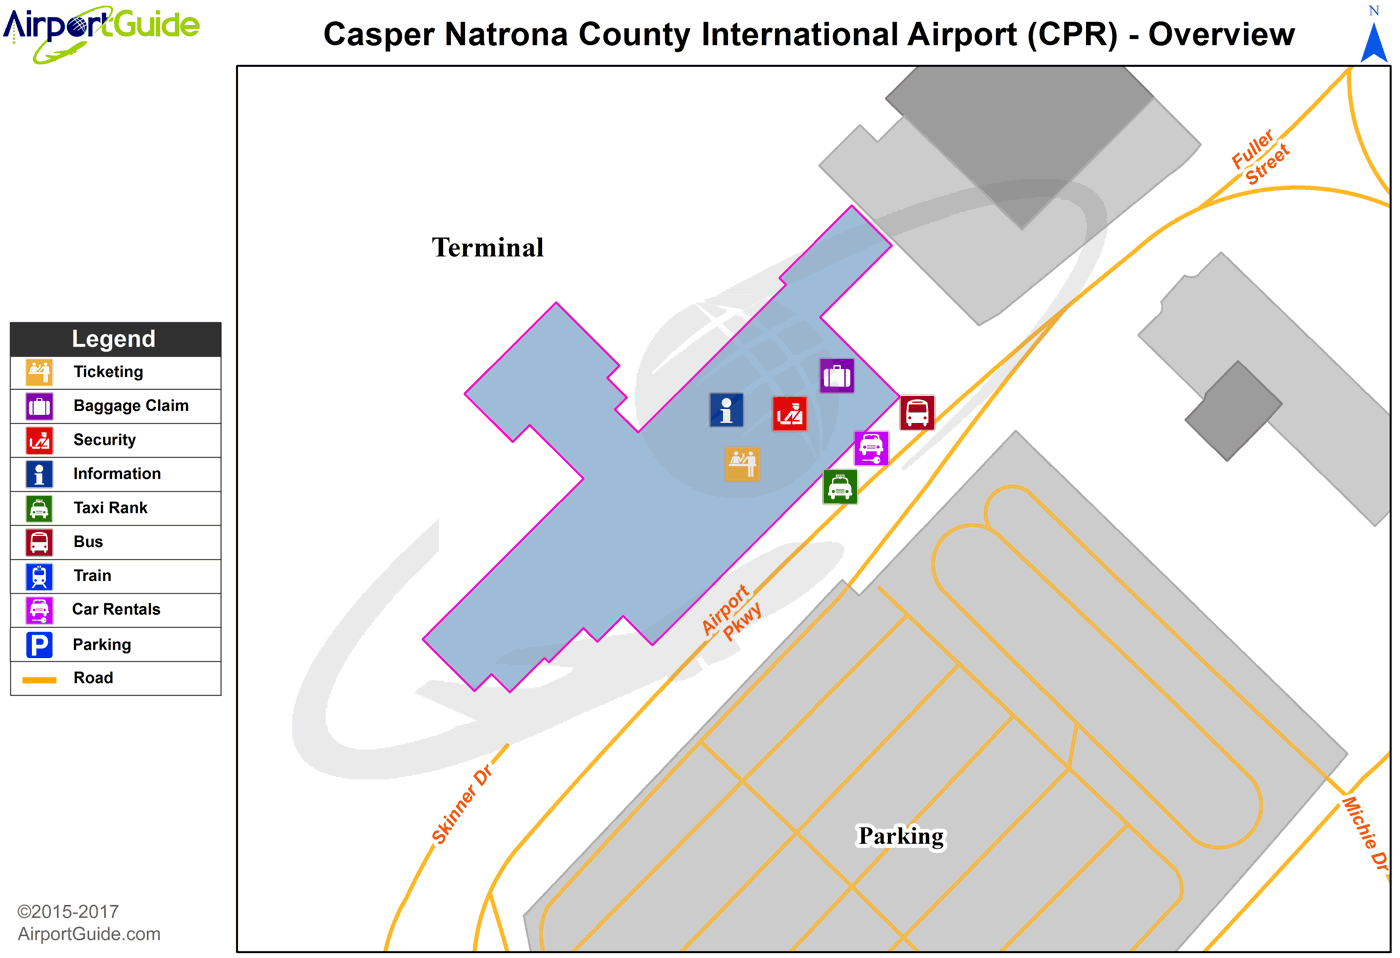 Casper - Casper/Natrona County International (CPR) Airport Terminal Map - Overview